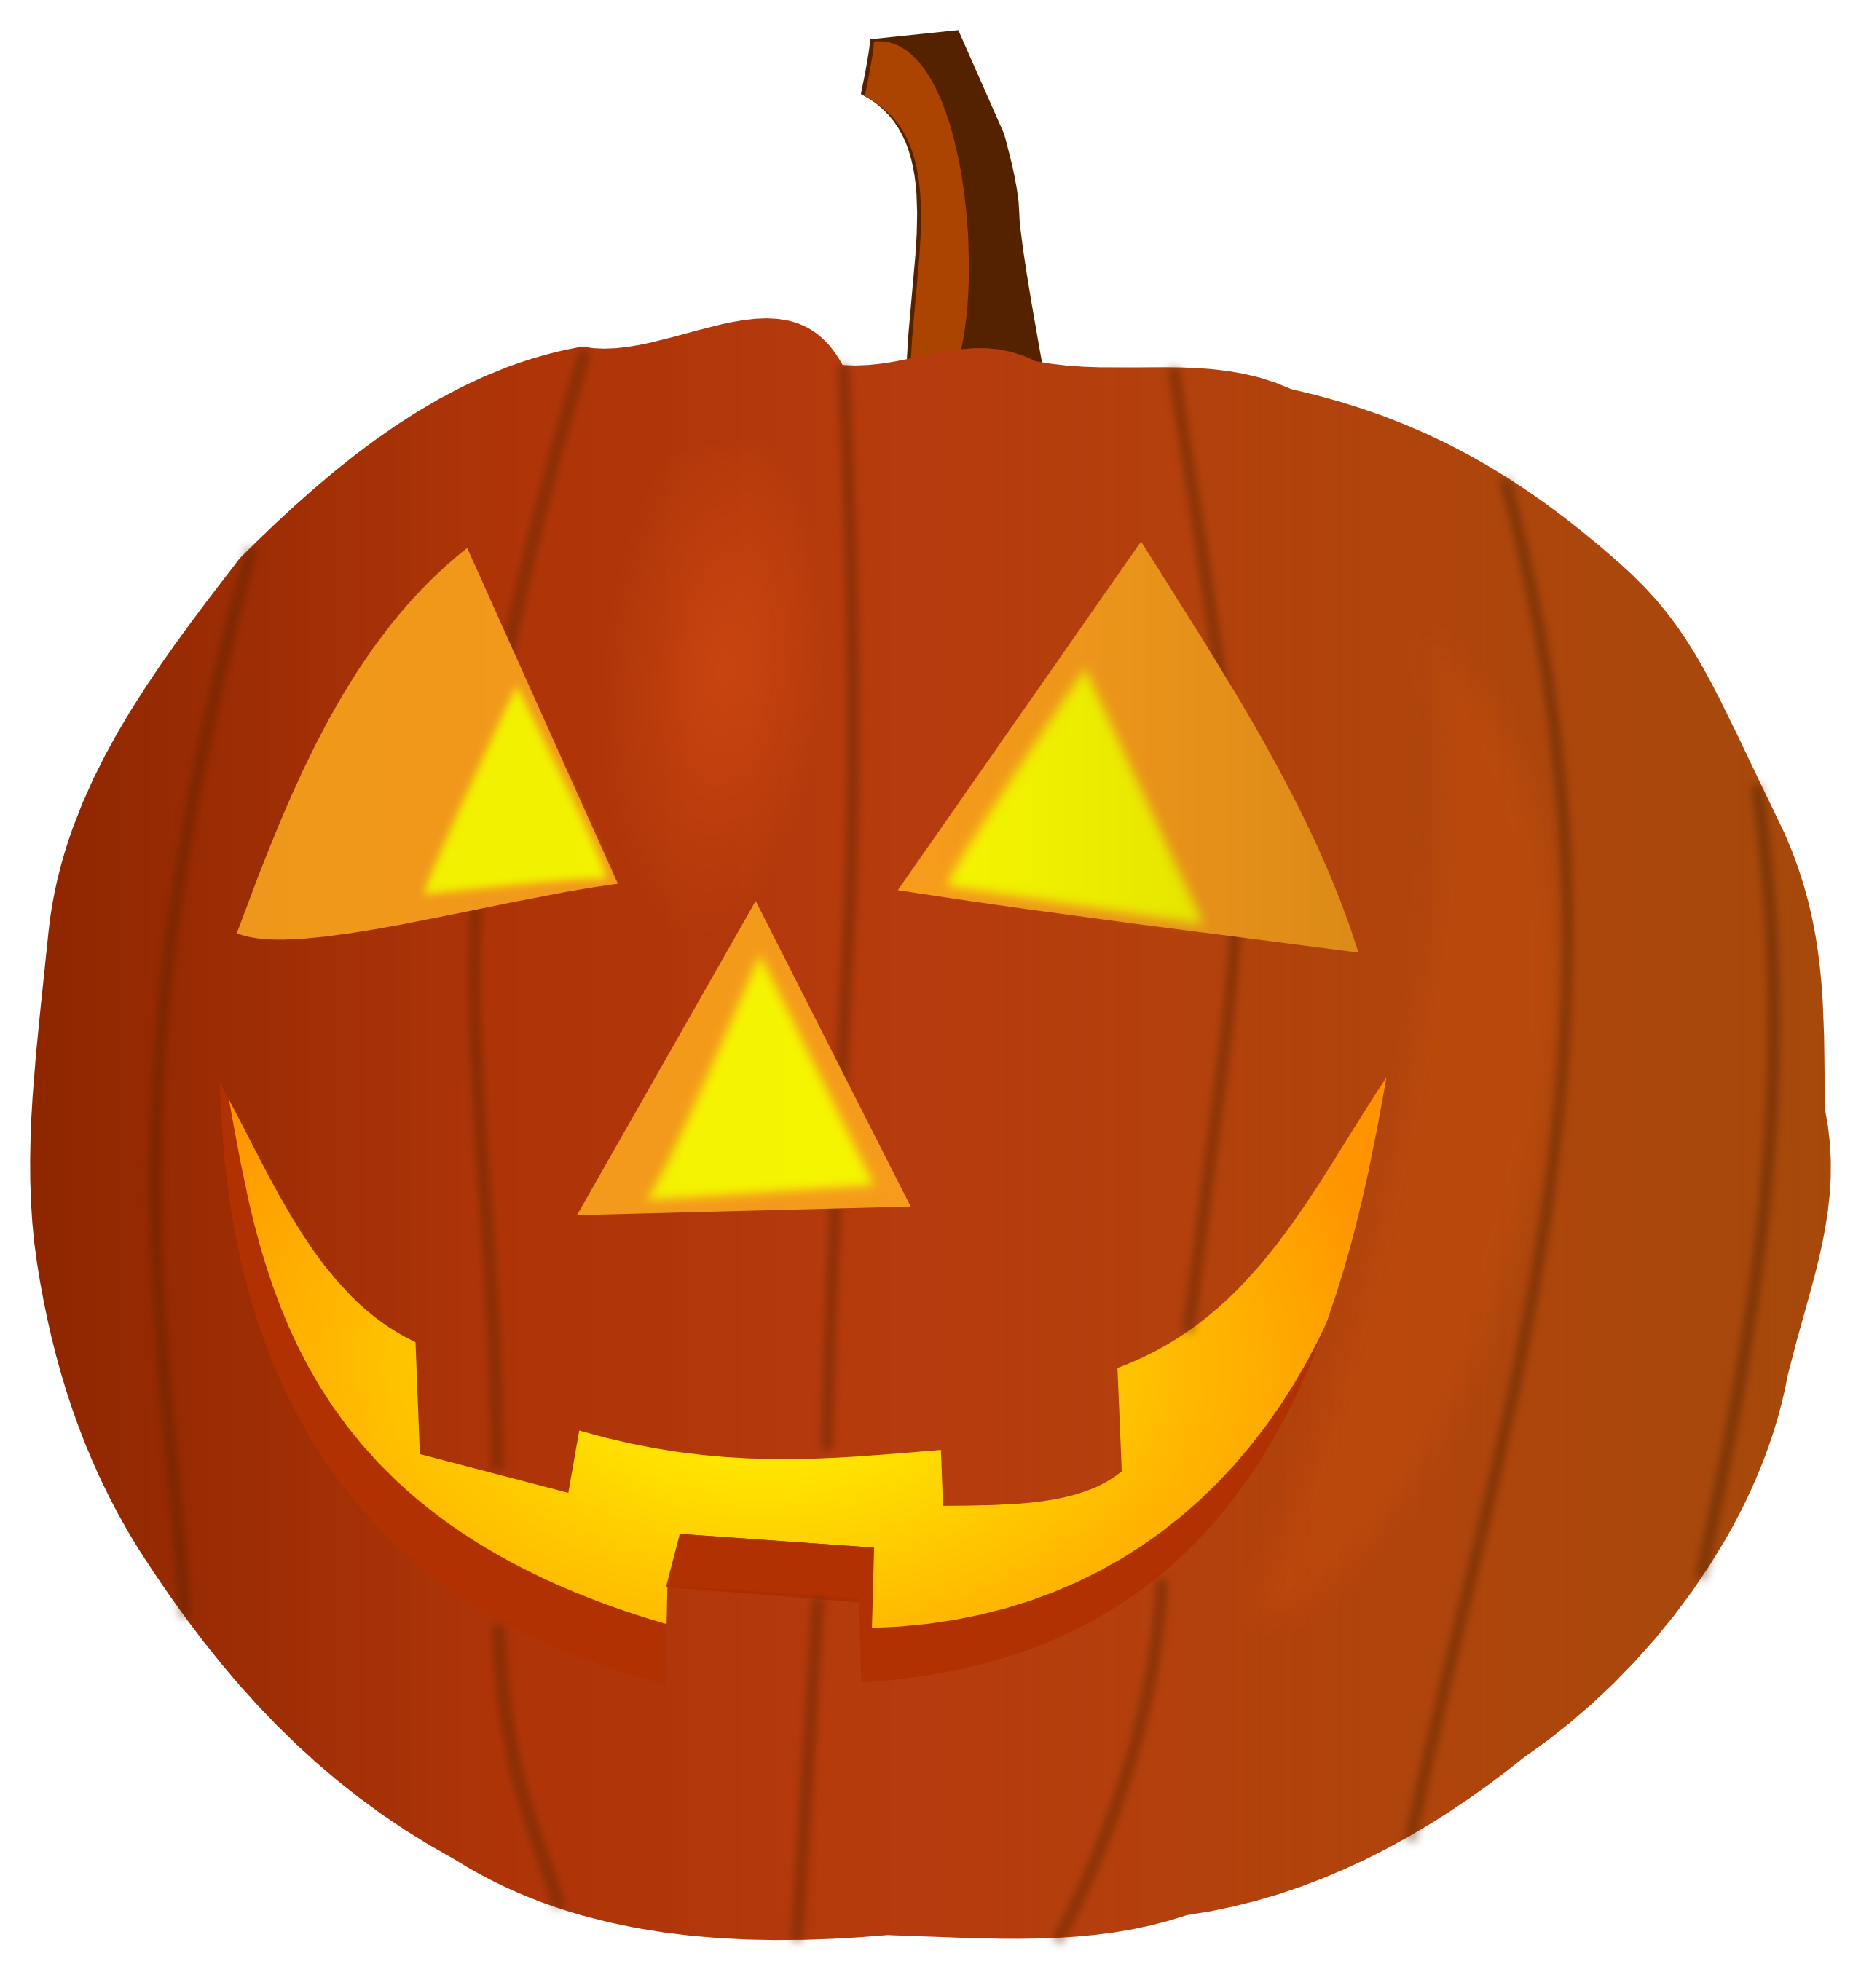 Vector pumpkins bunch. Pumpkin outline clipart at